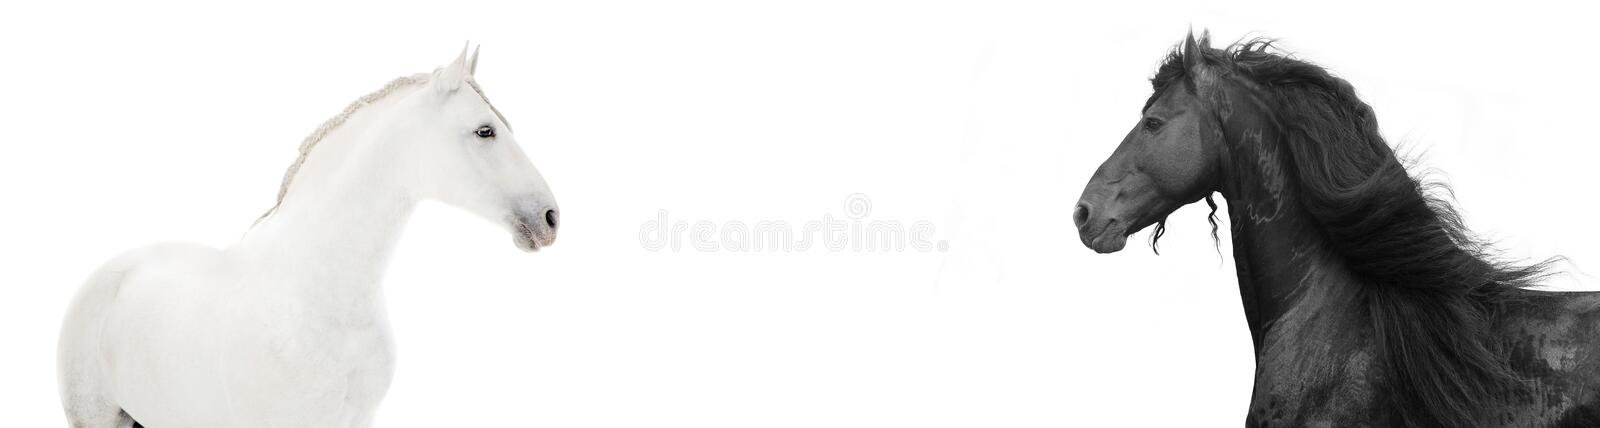 Design of website header with black and white hors royalty free stock photography